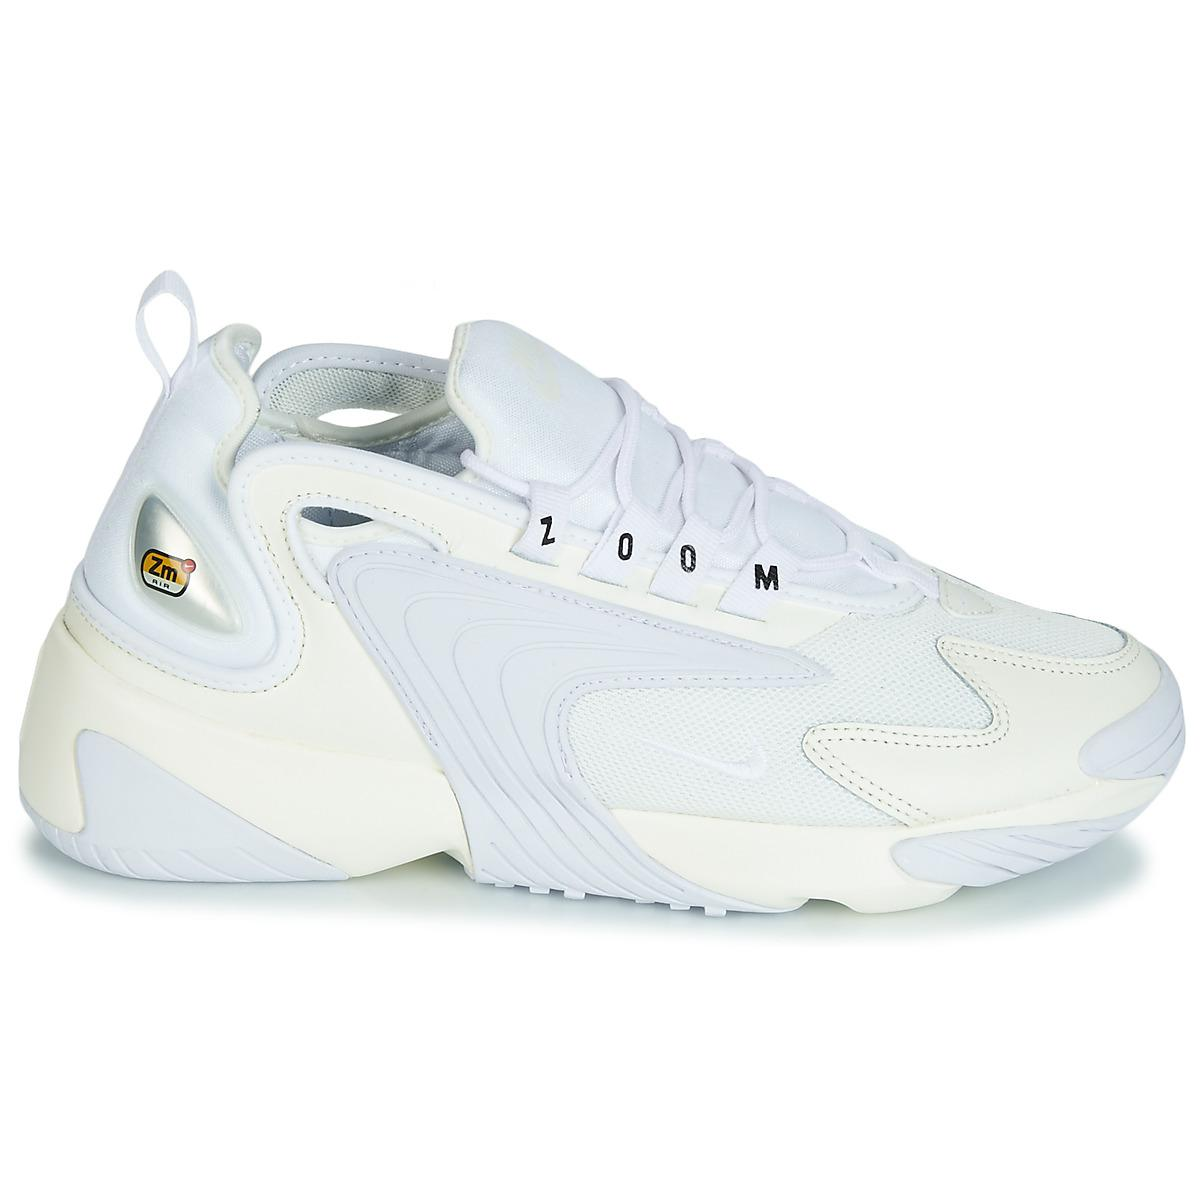 409cc5afda74 Nike Zoom 2k W Women s Shoes (trainers) In White in White - Lyst